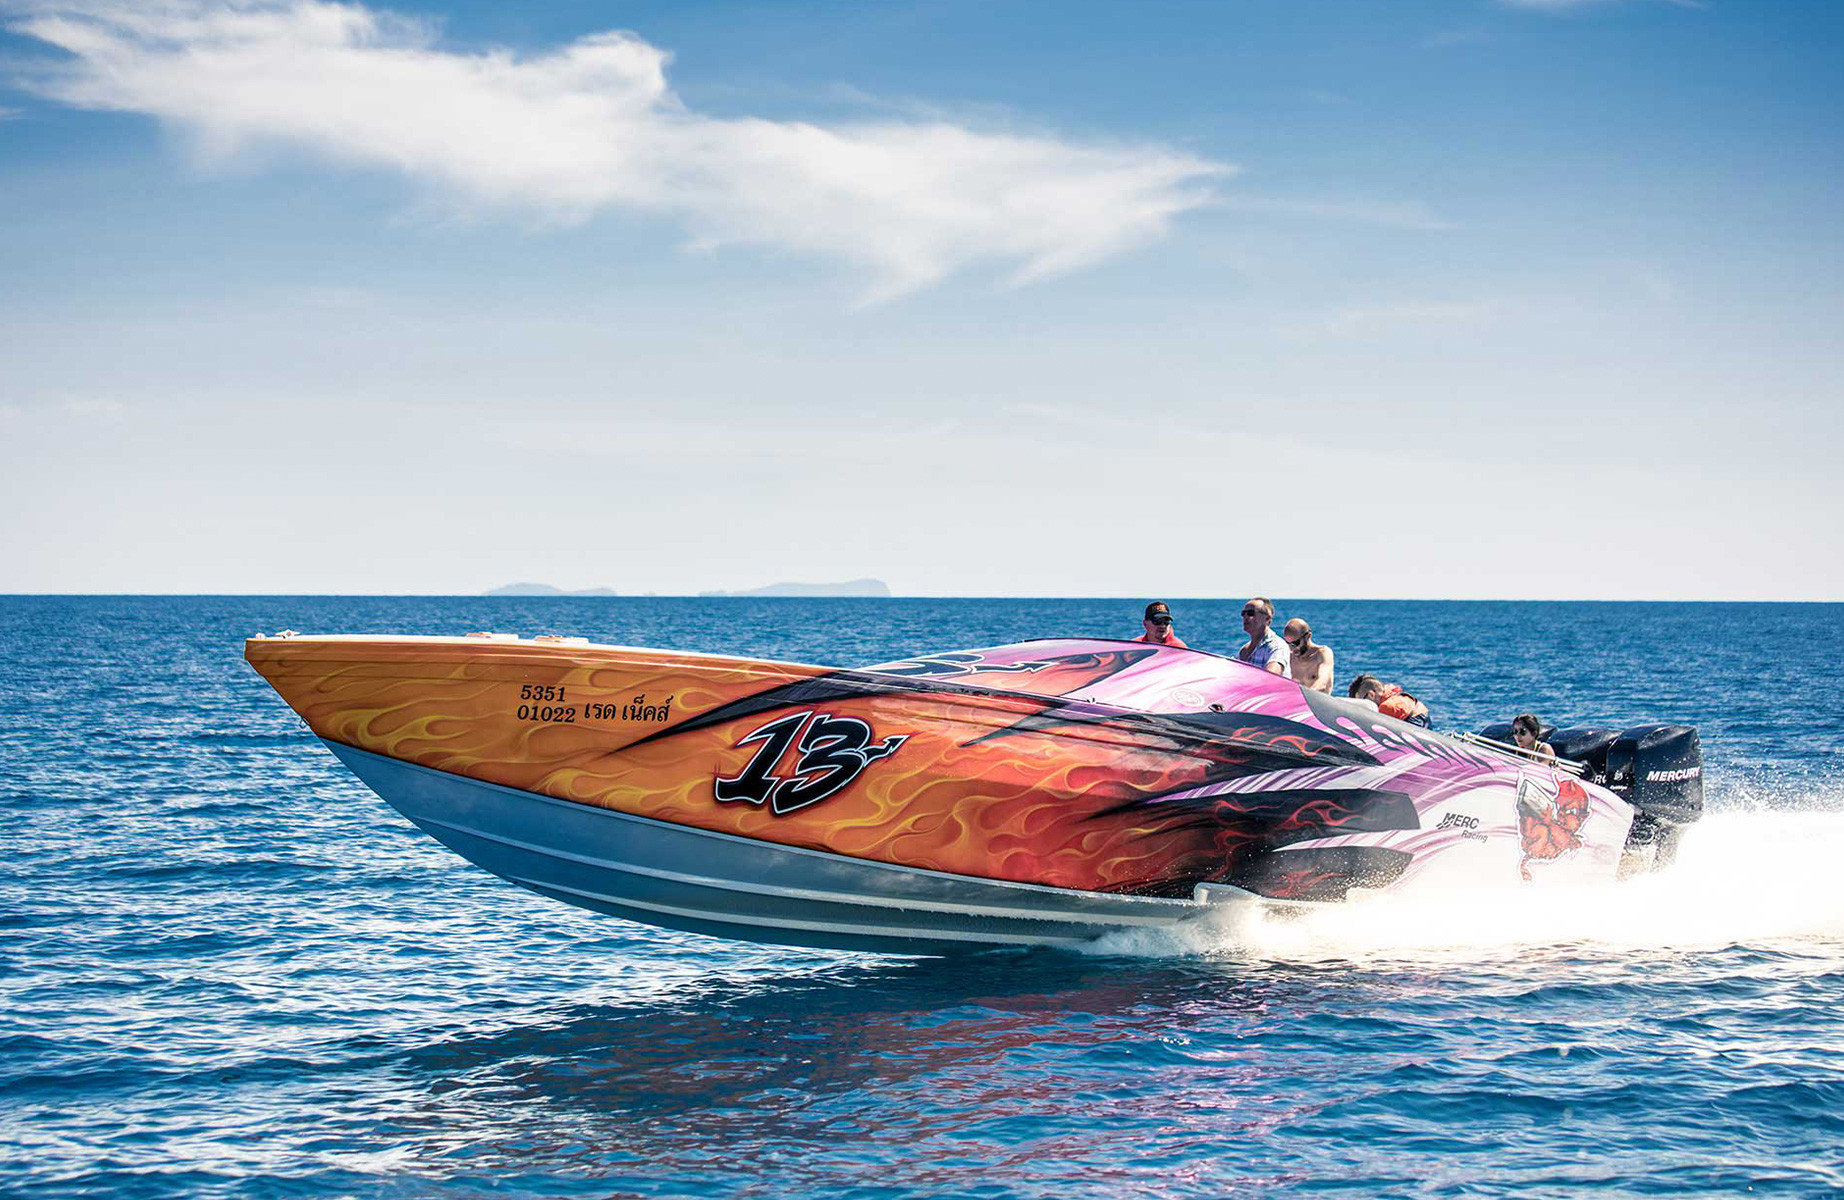 Speedboat Xperience is like a dream